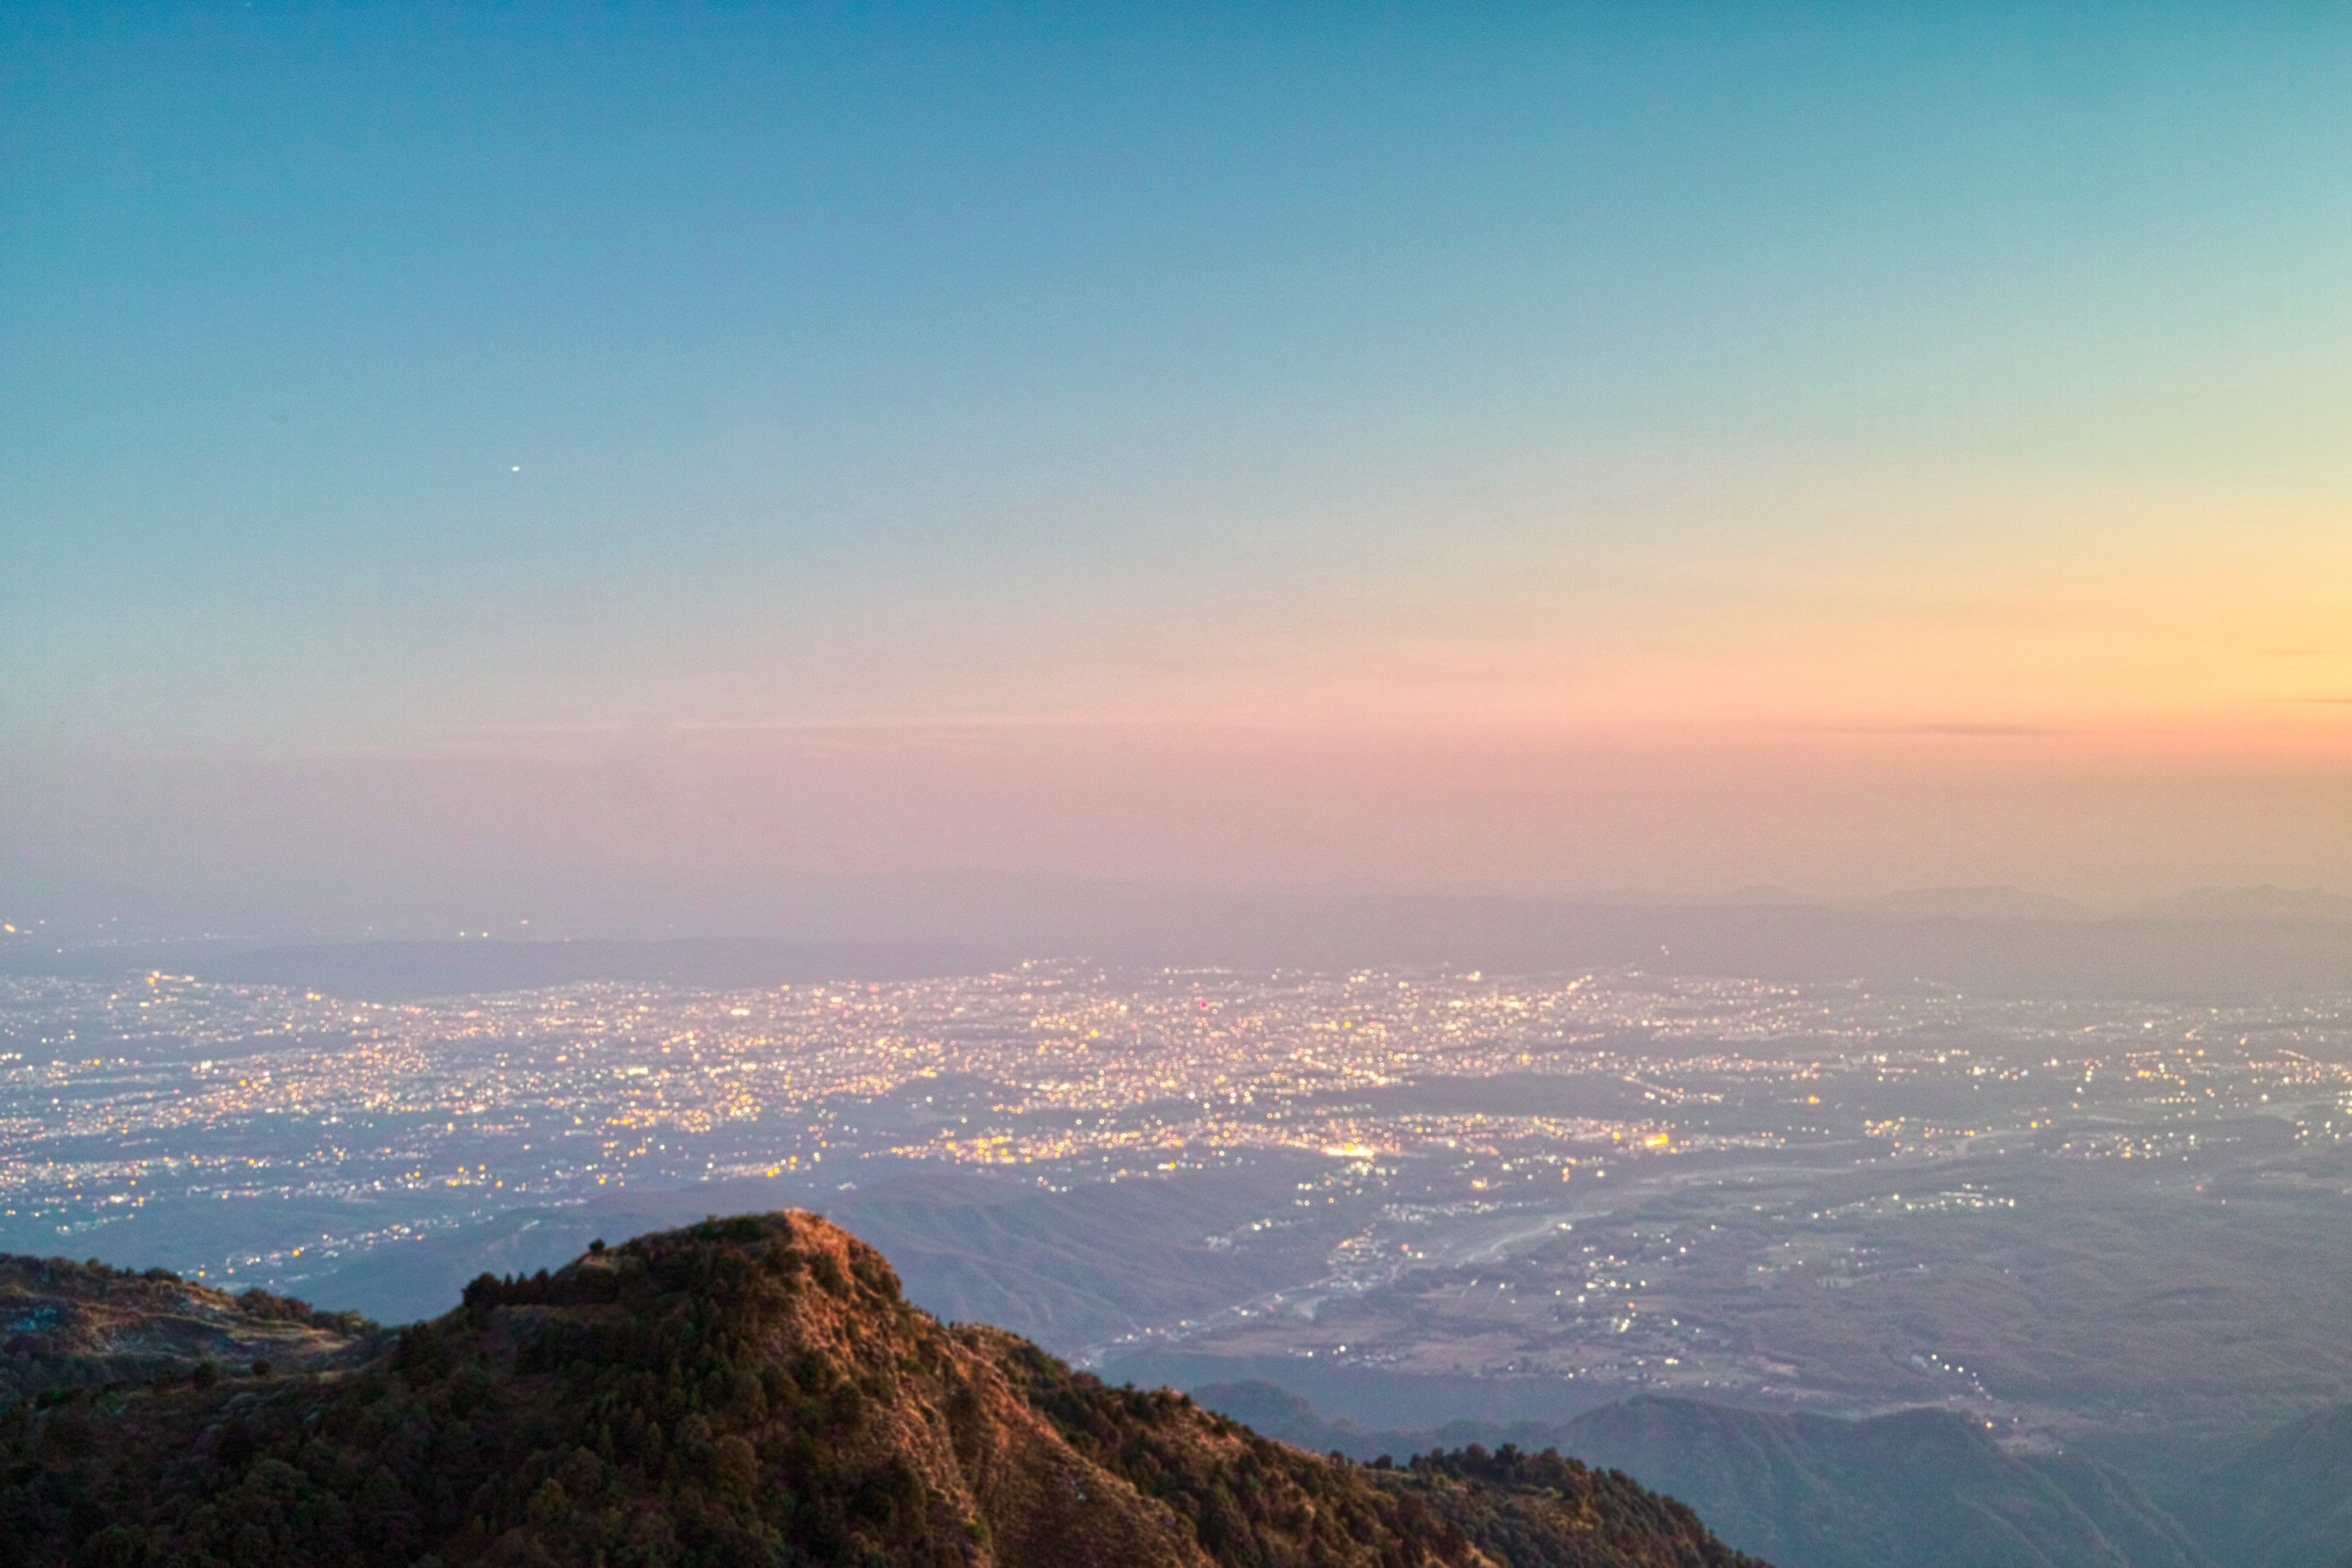 Sunset over Doon Valley from Park House © Bharat Singh Bhadwal. All rights reserved.